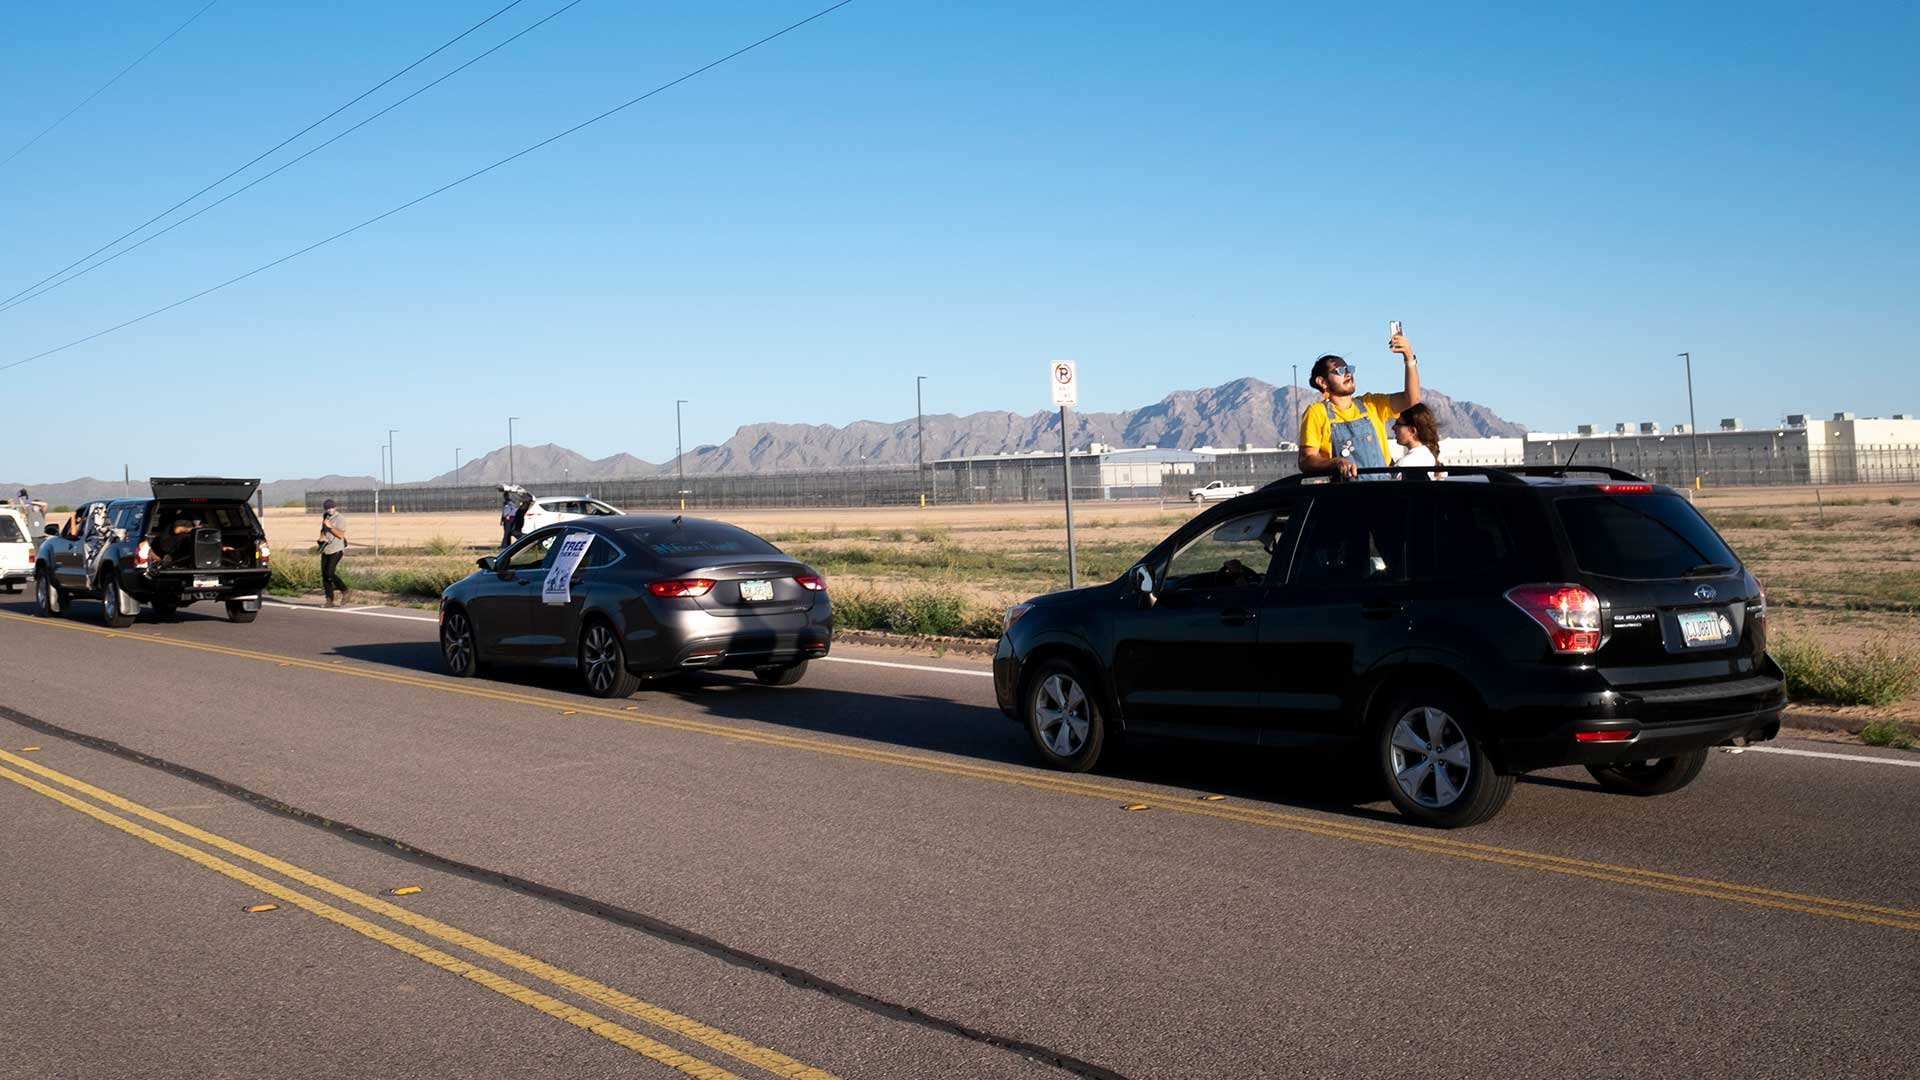 A line of cars drives past the La Palma Detention Center in Eloy, Arizona. Demonstrators honked horns and hung banners from their windows calling for thge release of detainees in the wake of the coronavirus.